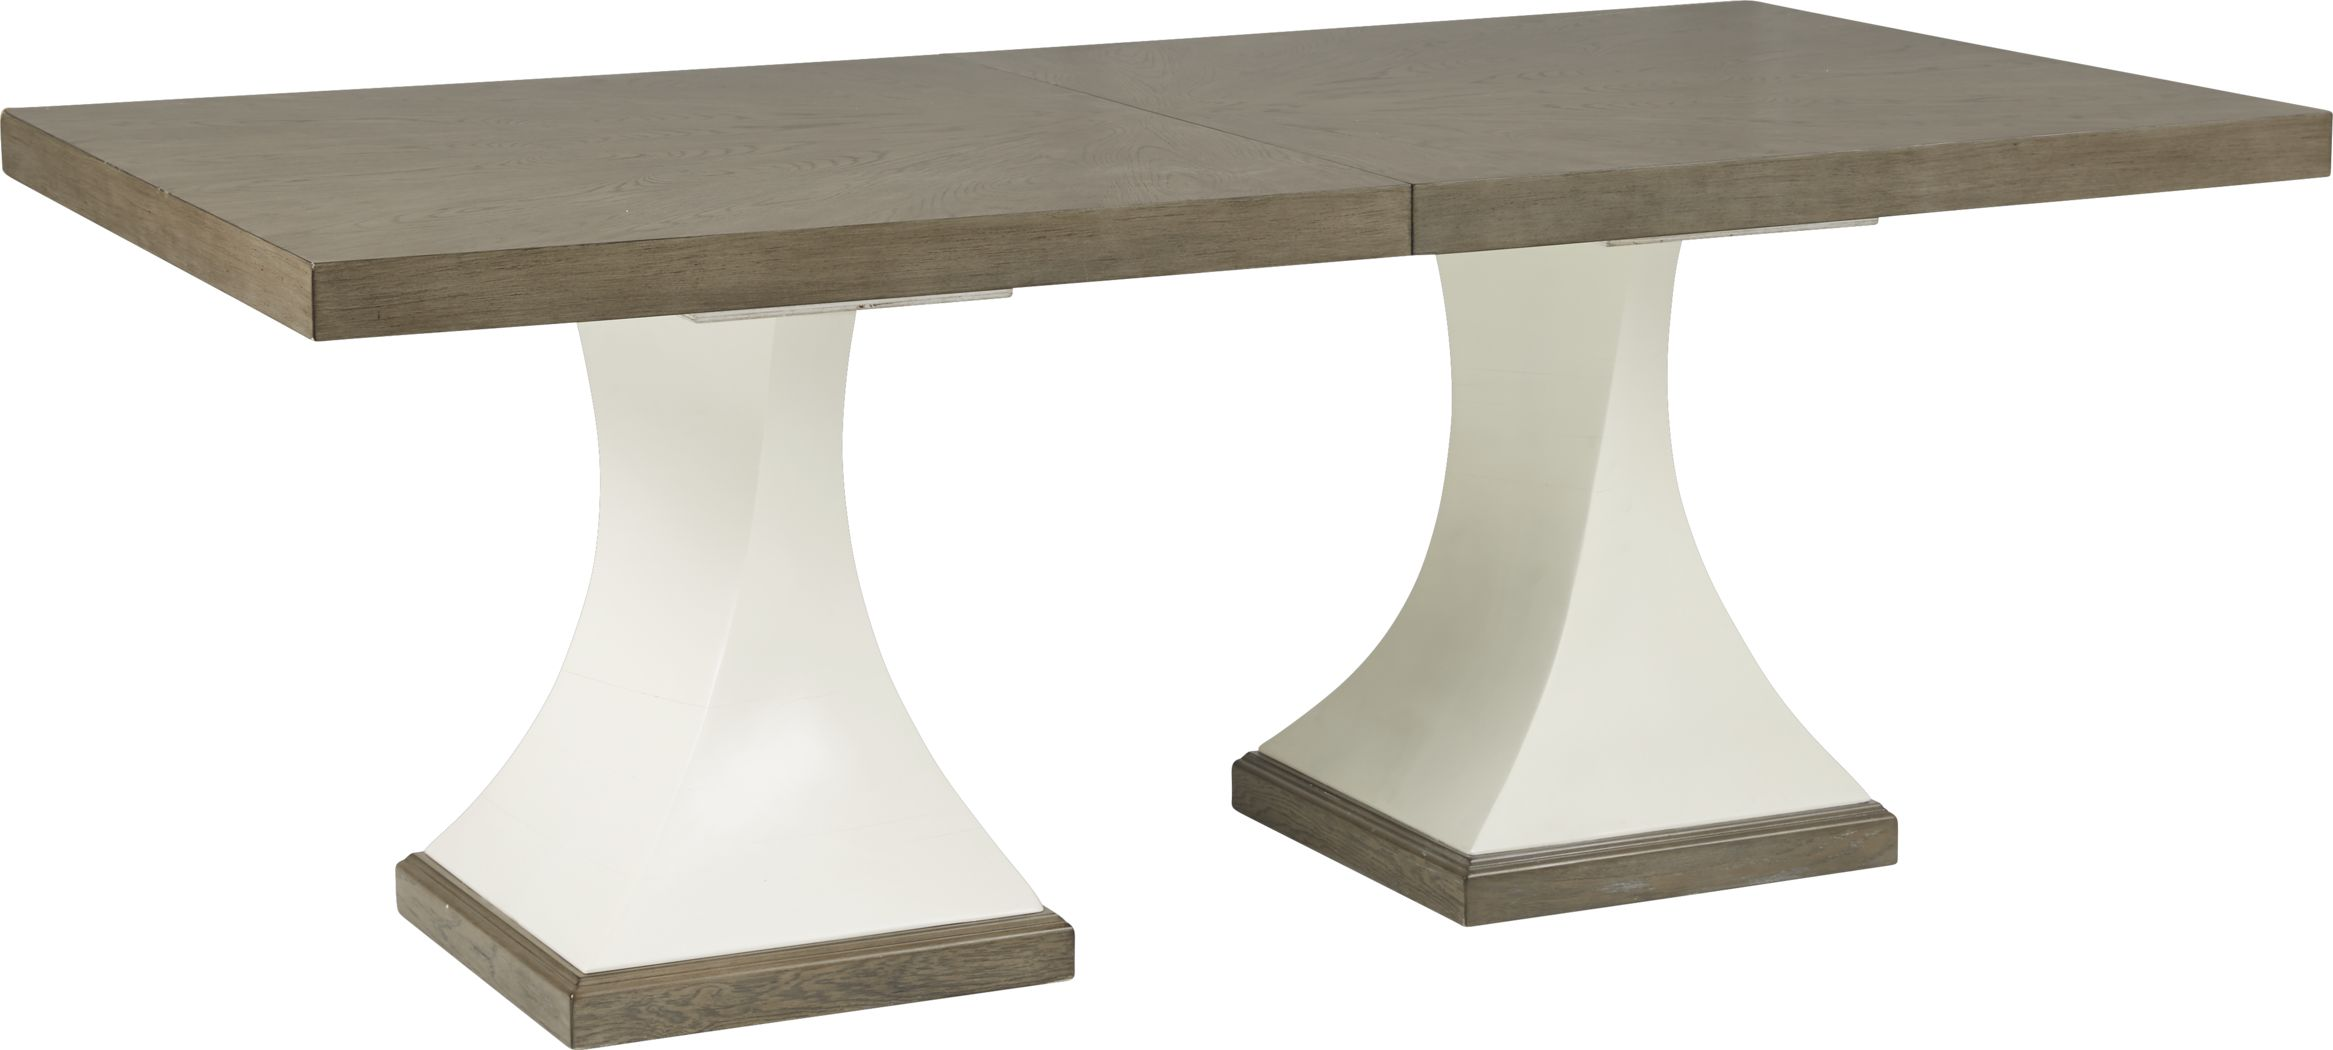 Sofia Vergara Santa Fiora White Rectangle Dining Table